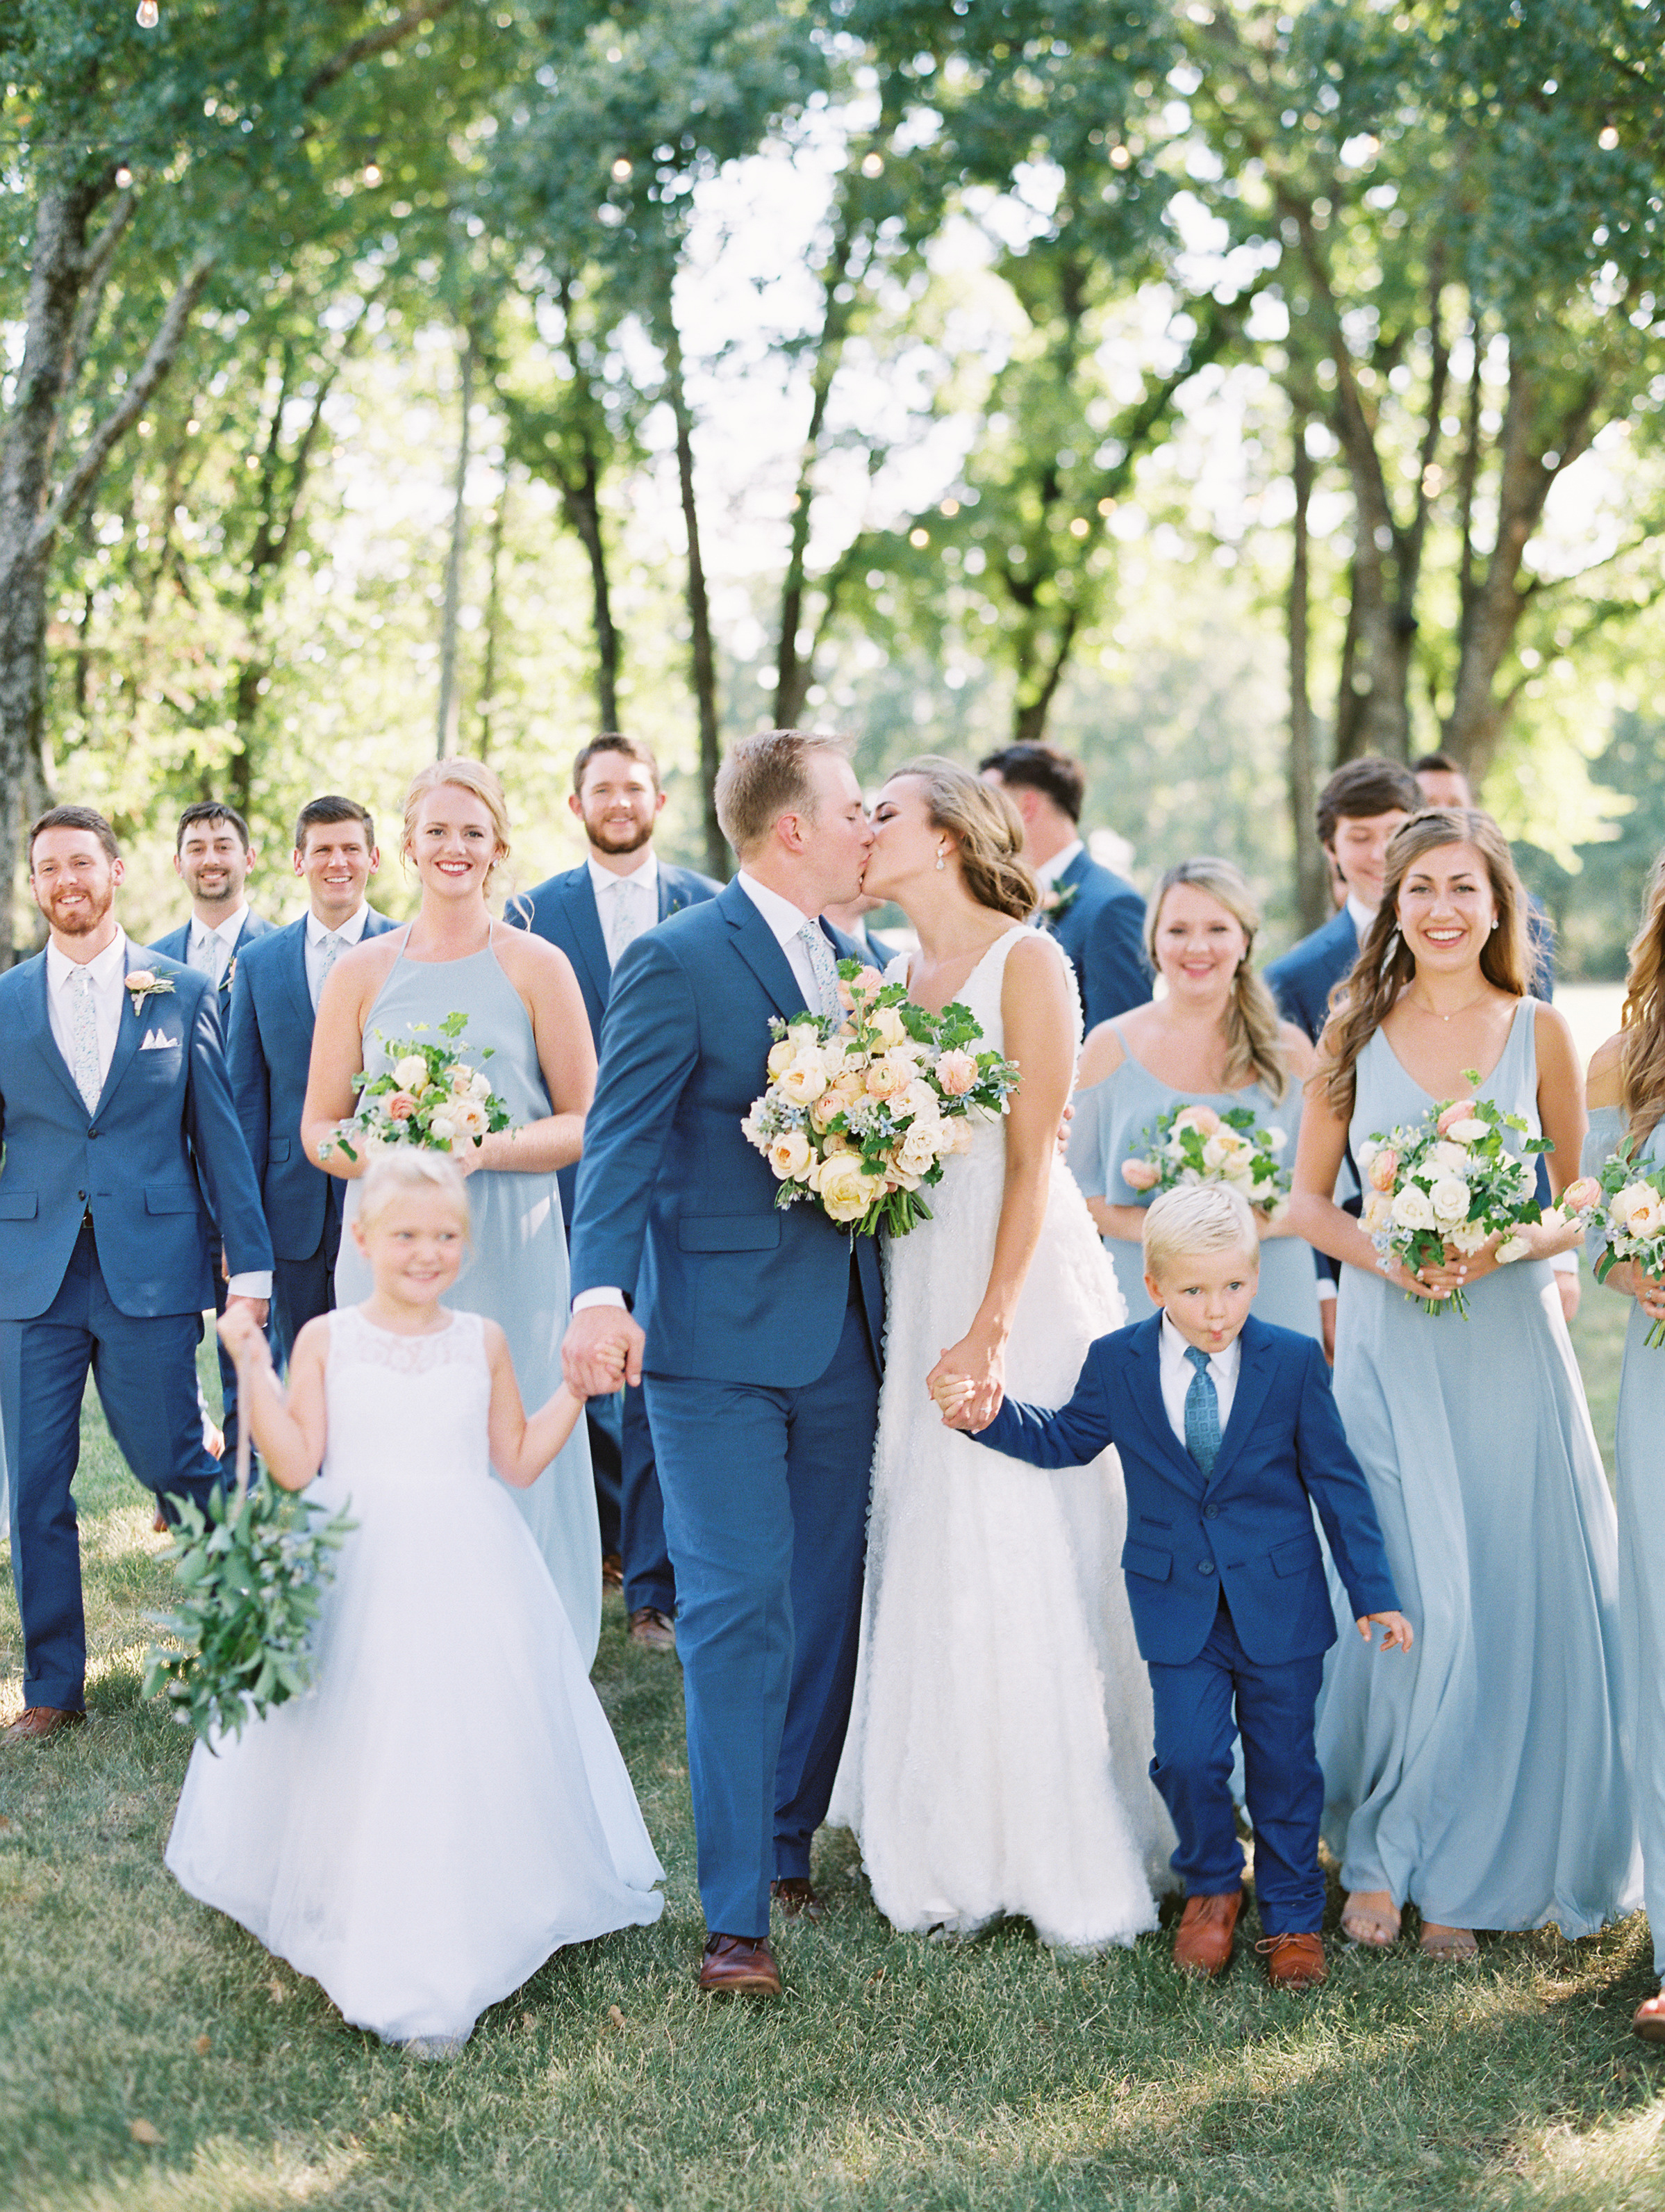 Summer Wedding in Shades of Blue - Lindsey Brunk